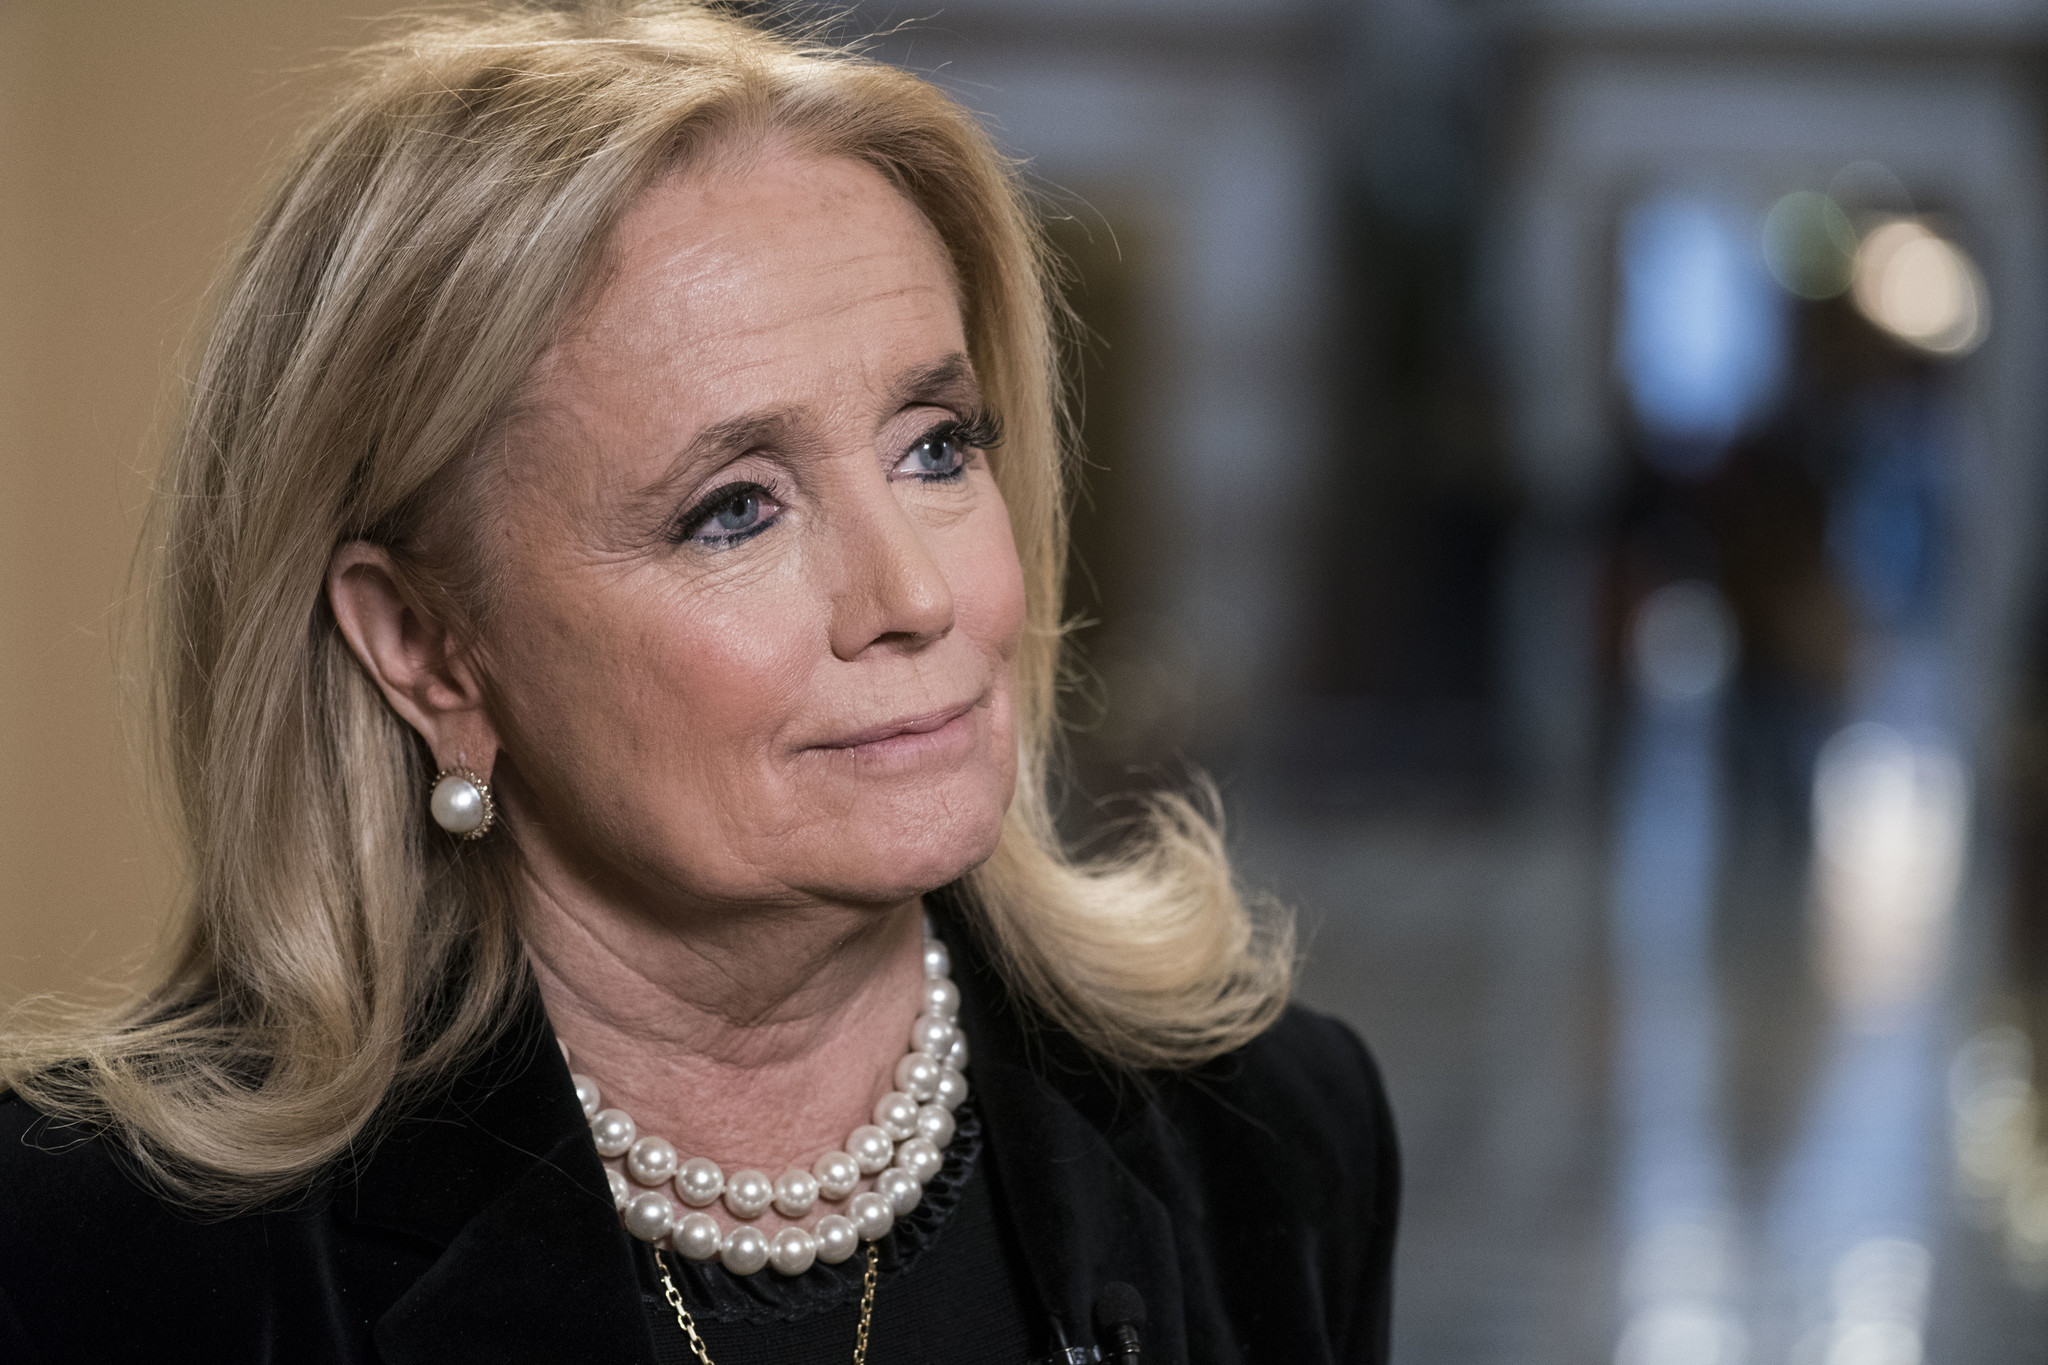 Rep. Debbie Dingell doesn't want Trump apology, but thoughtfulness from Americans